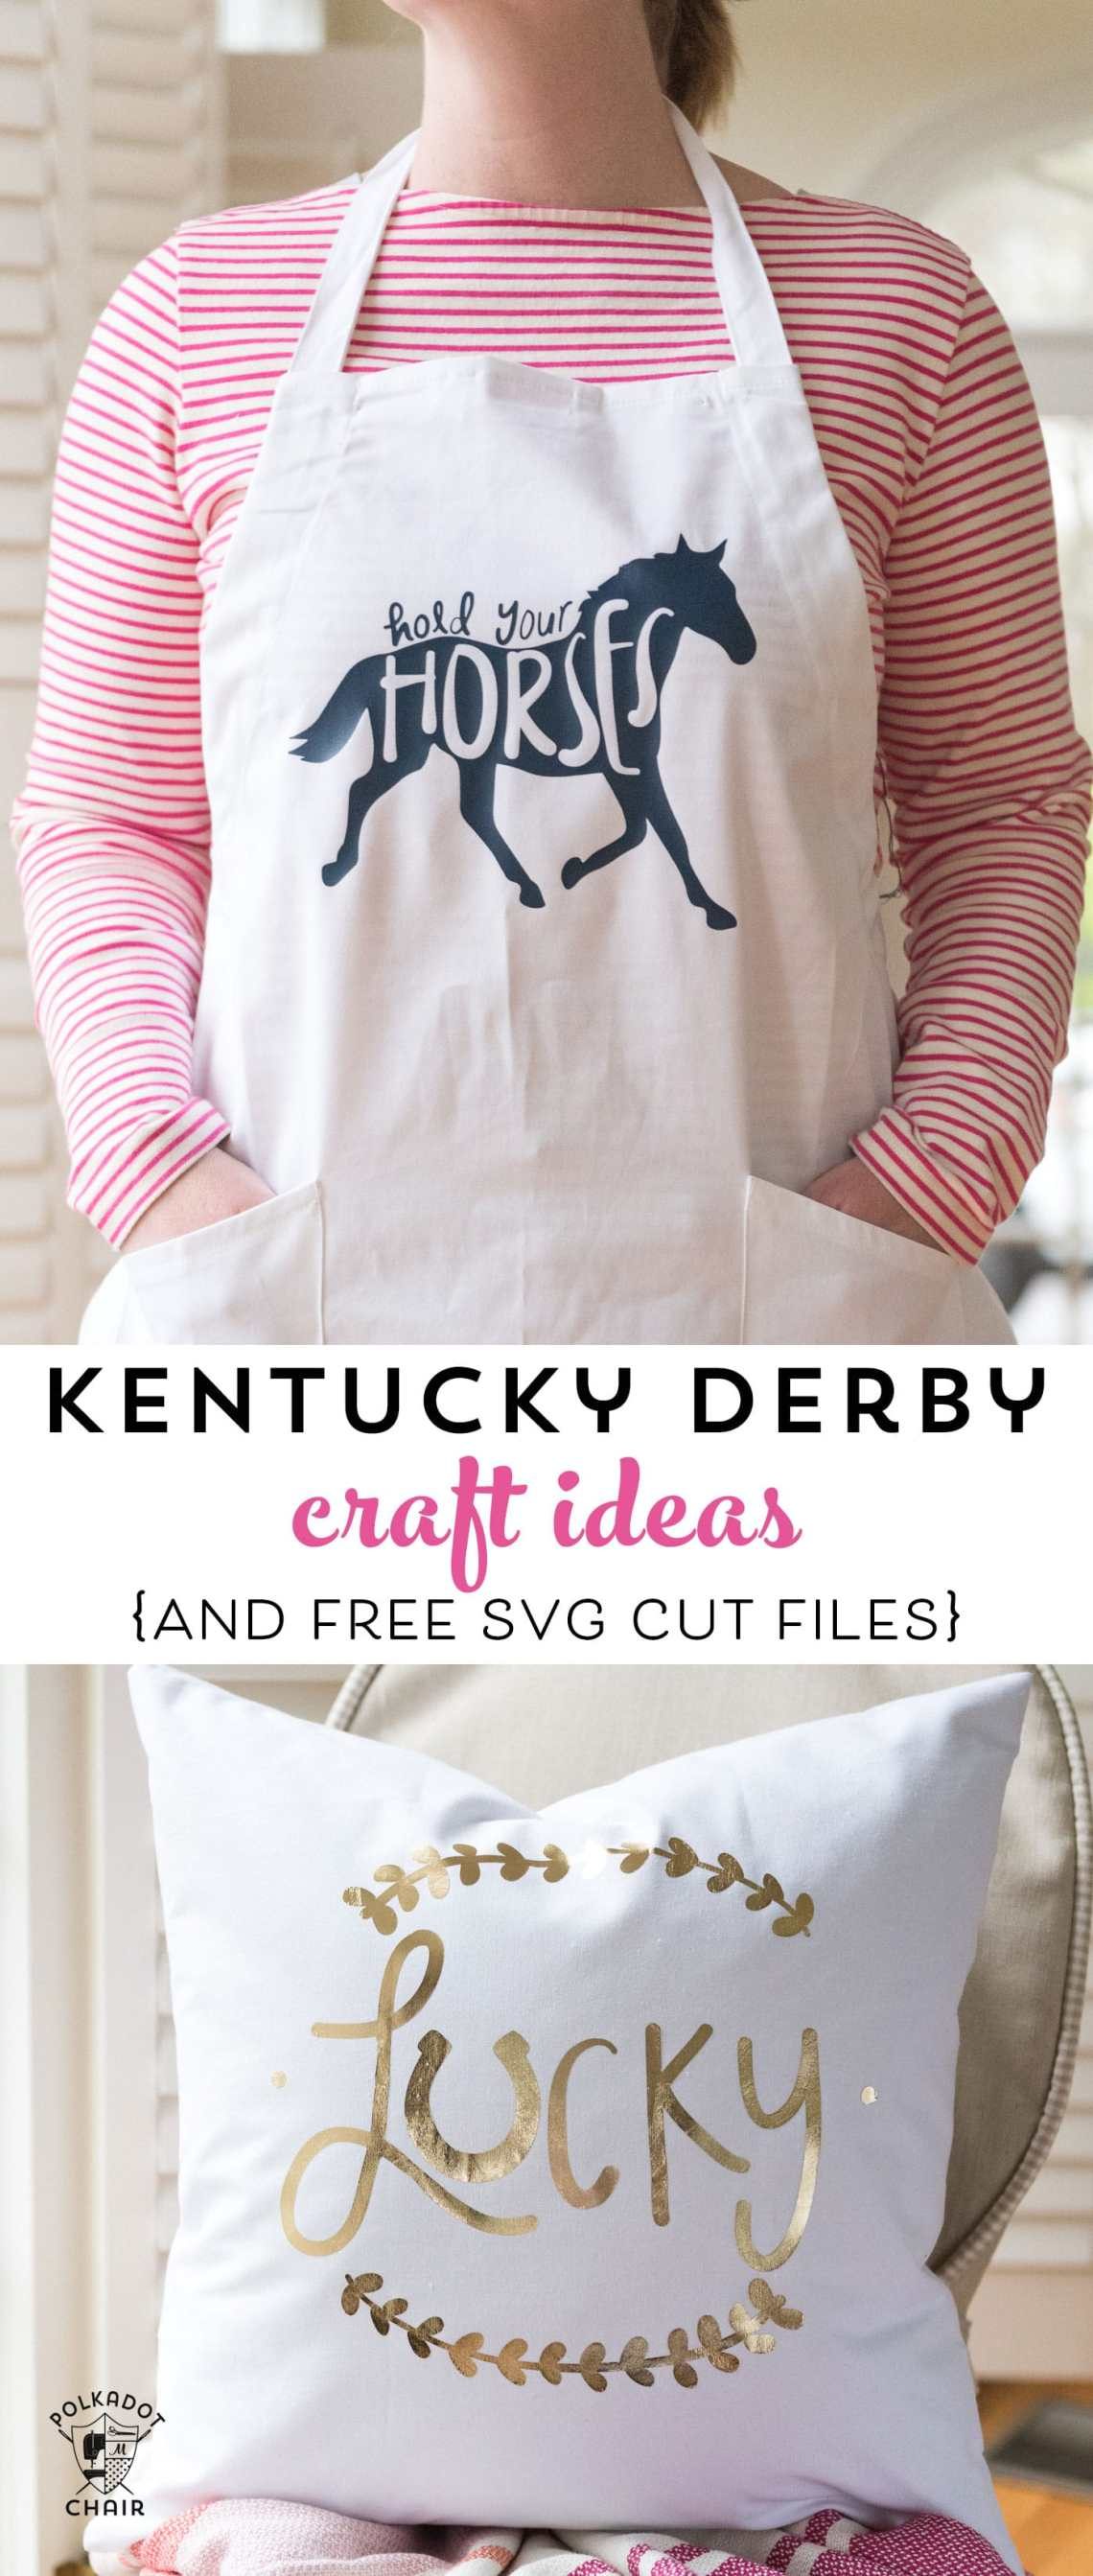 Download Kentucky Derby Craft Ideas and SVG Files - The Polka Dot Chair